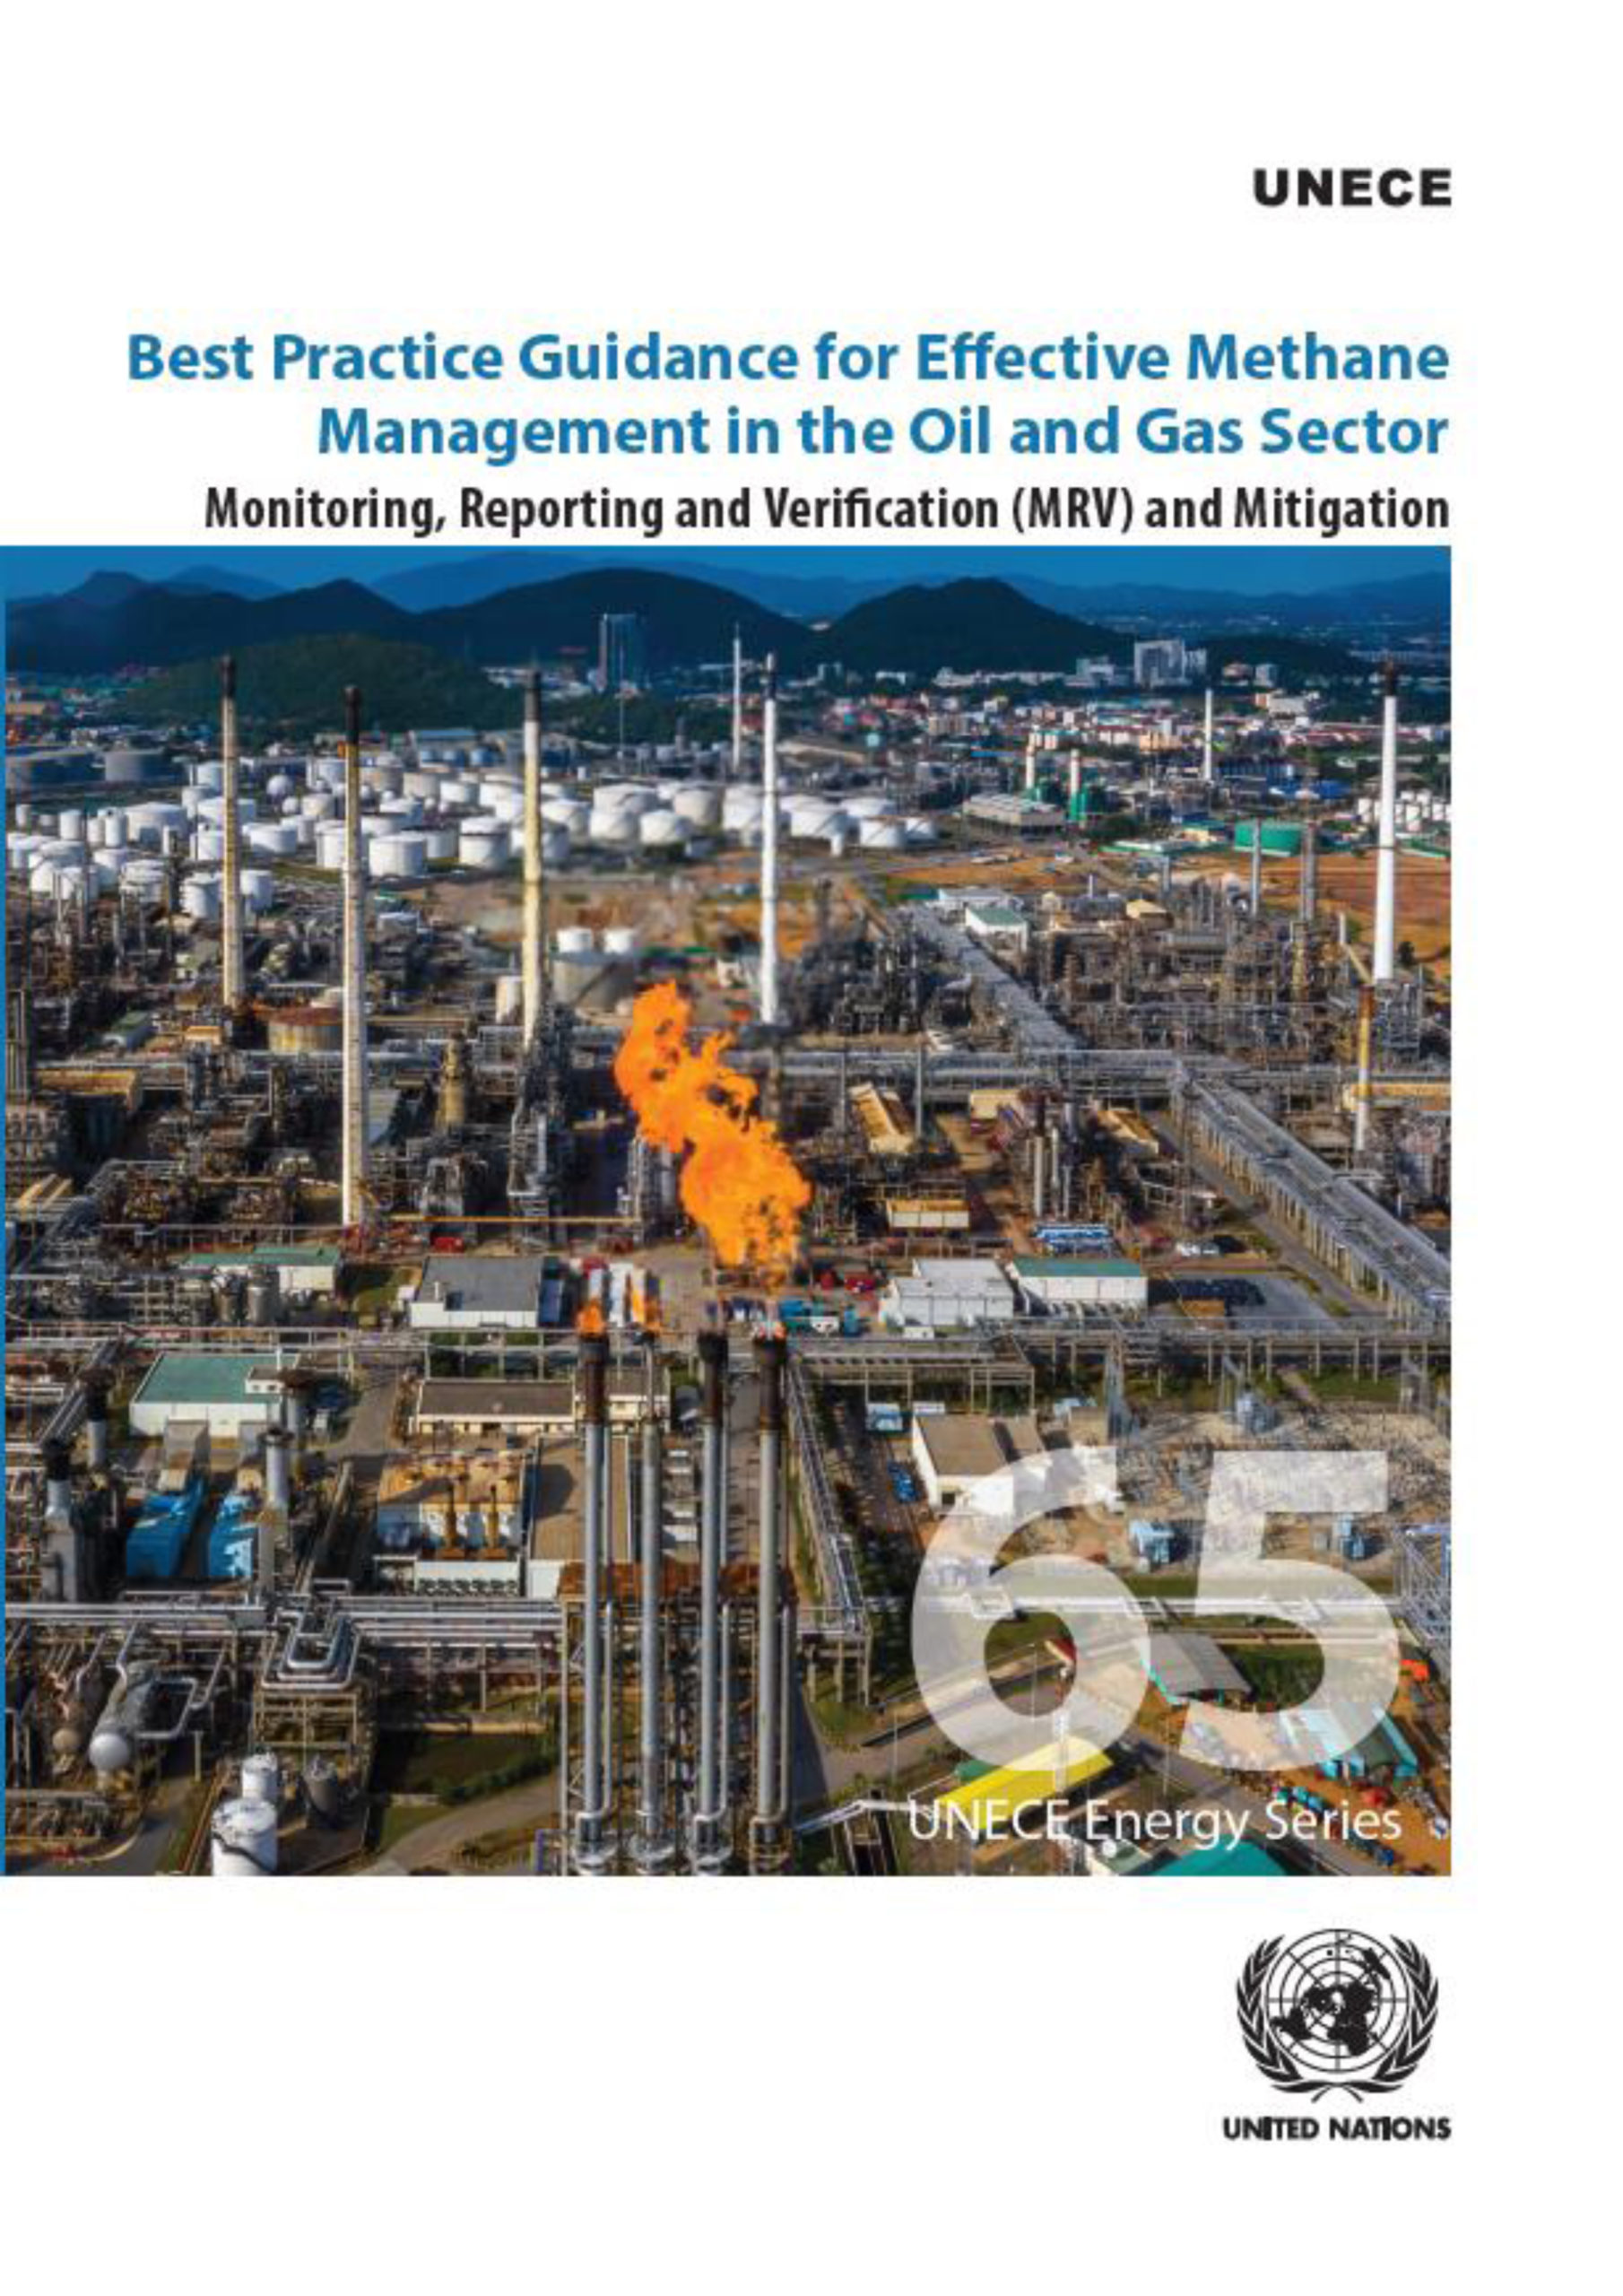 Best Practice Guidance for Effective Methane Management in the Oil and Gas Sector